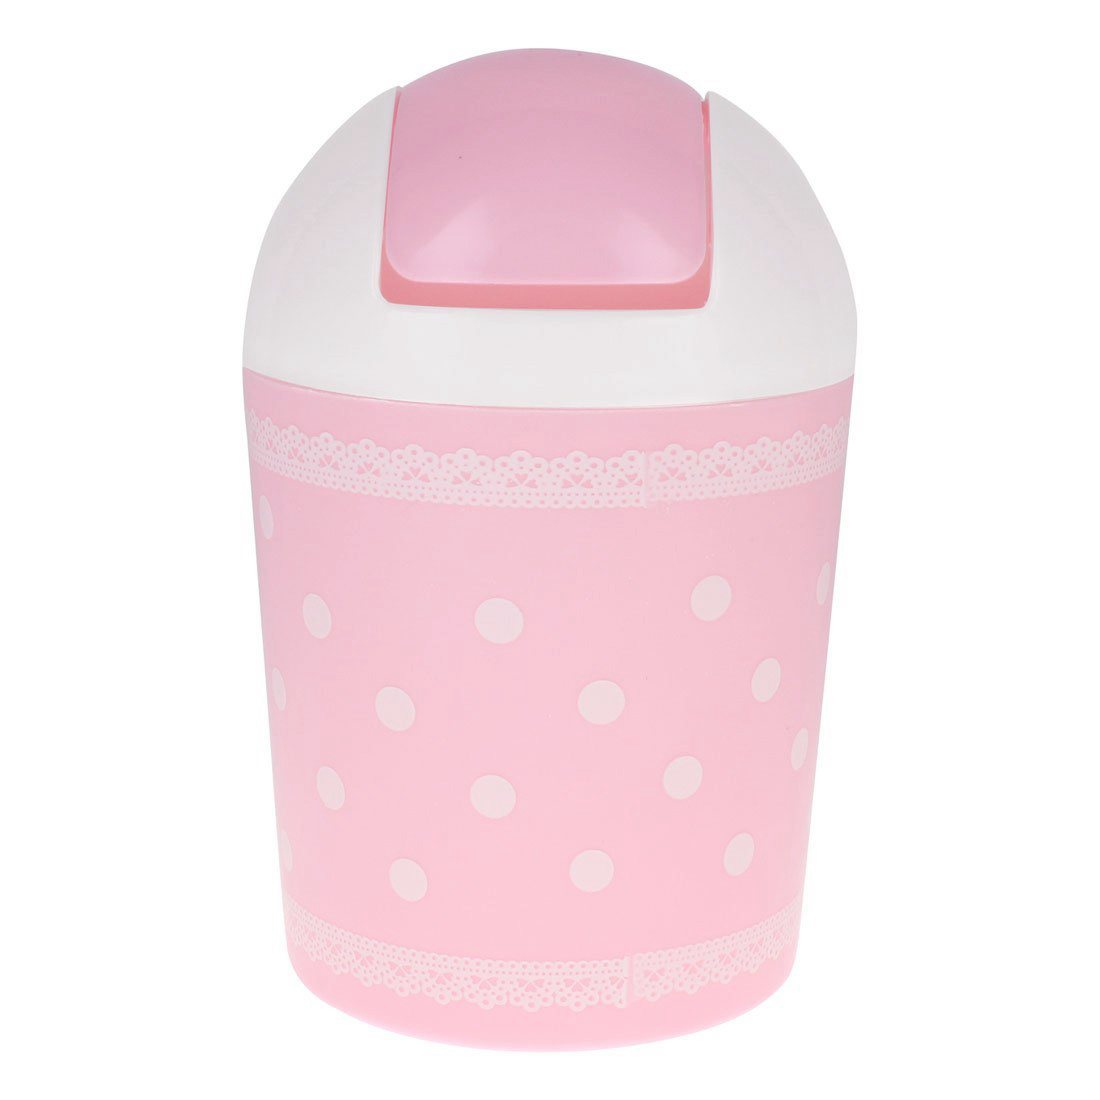 HOT GCZW-Design of lace garbage pink garbage can